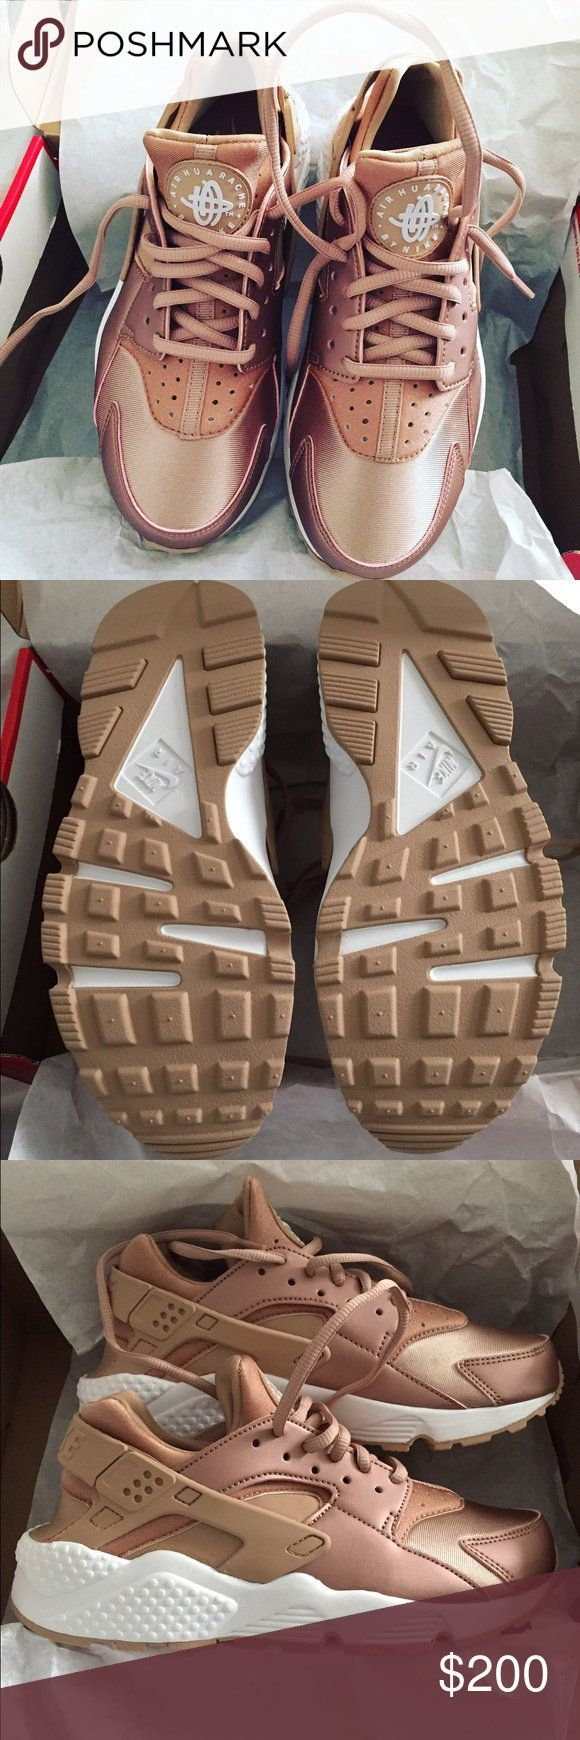 464002818ca9 Shoes  adidas